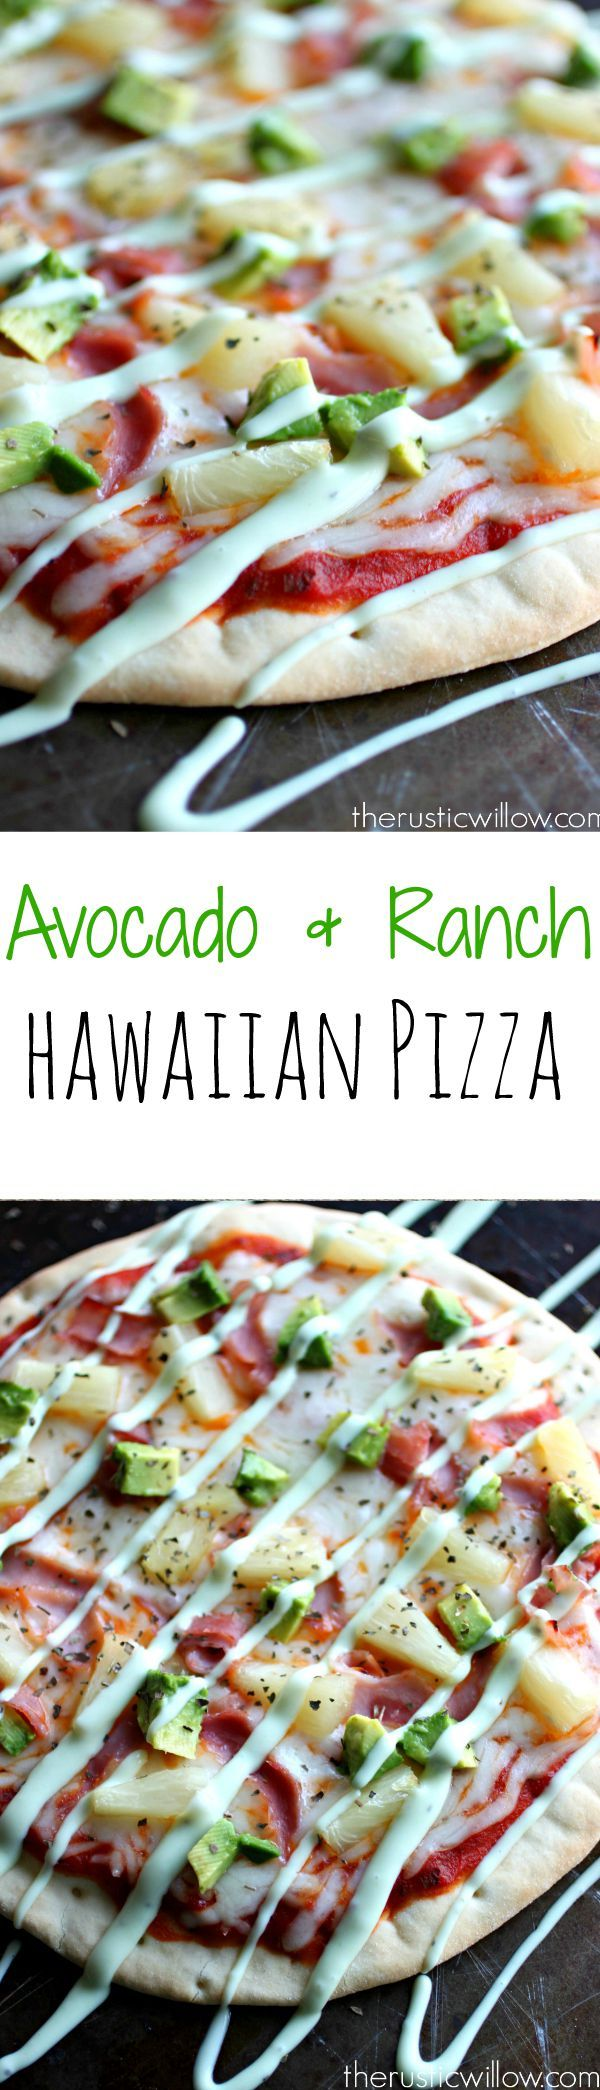 Incredibly delicious Hawaiian Pizza topped with avocado and ranch | therusticwillow.com